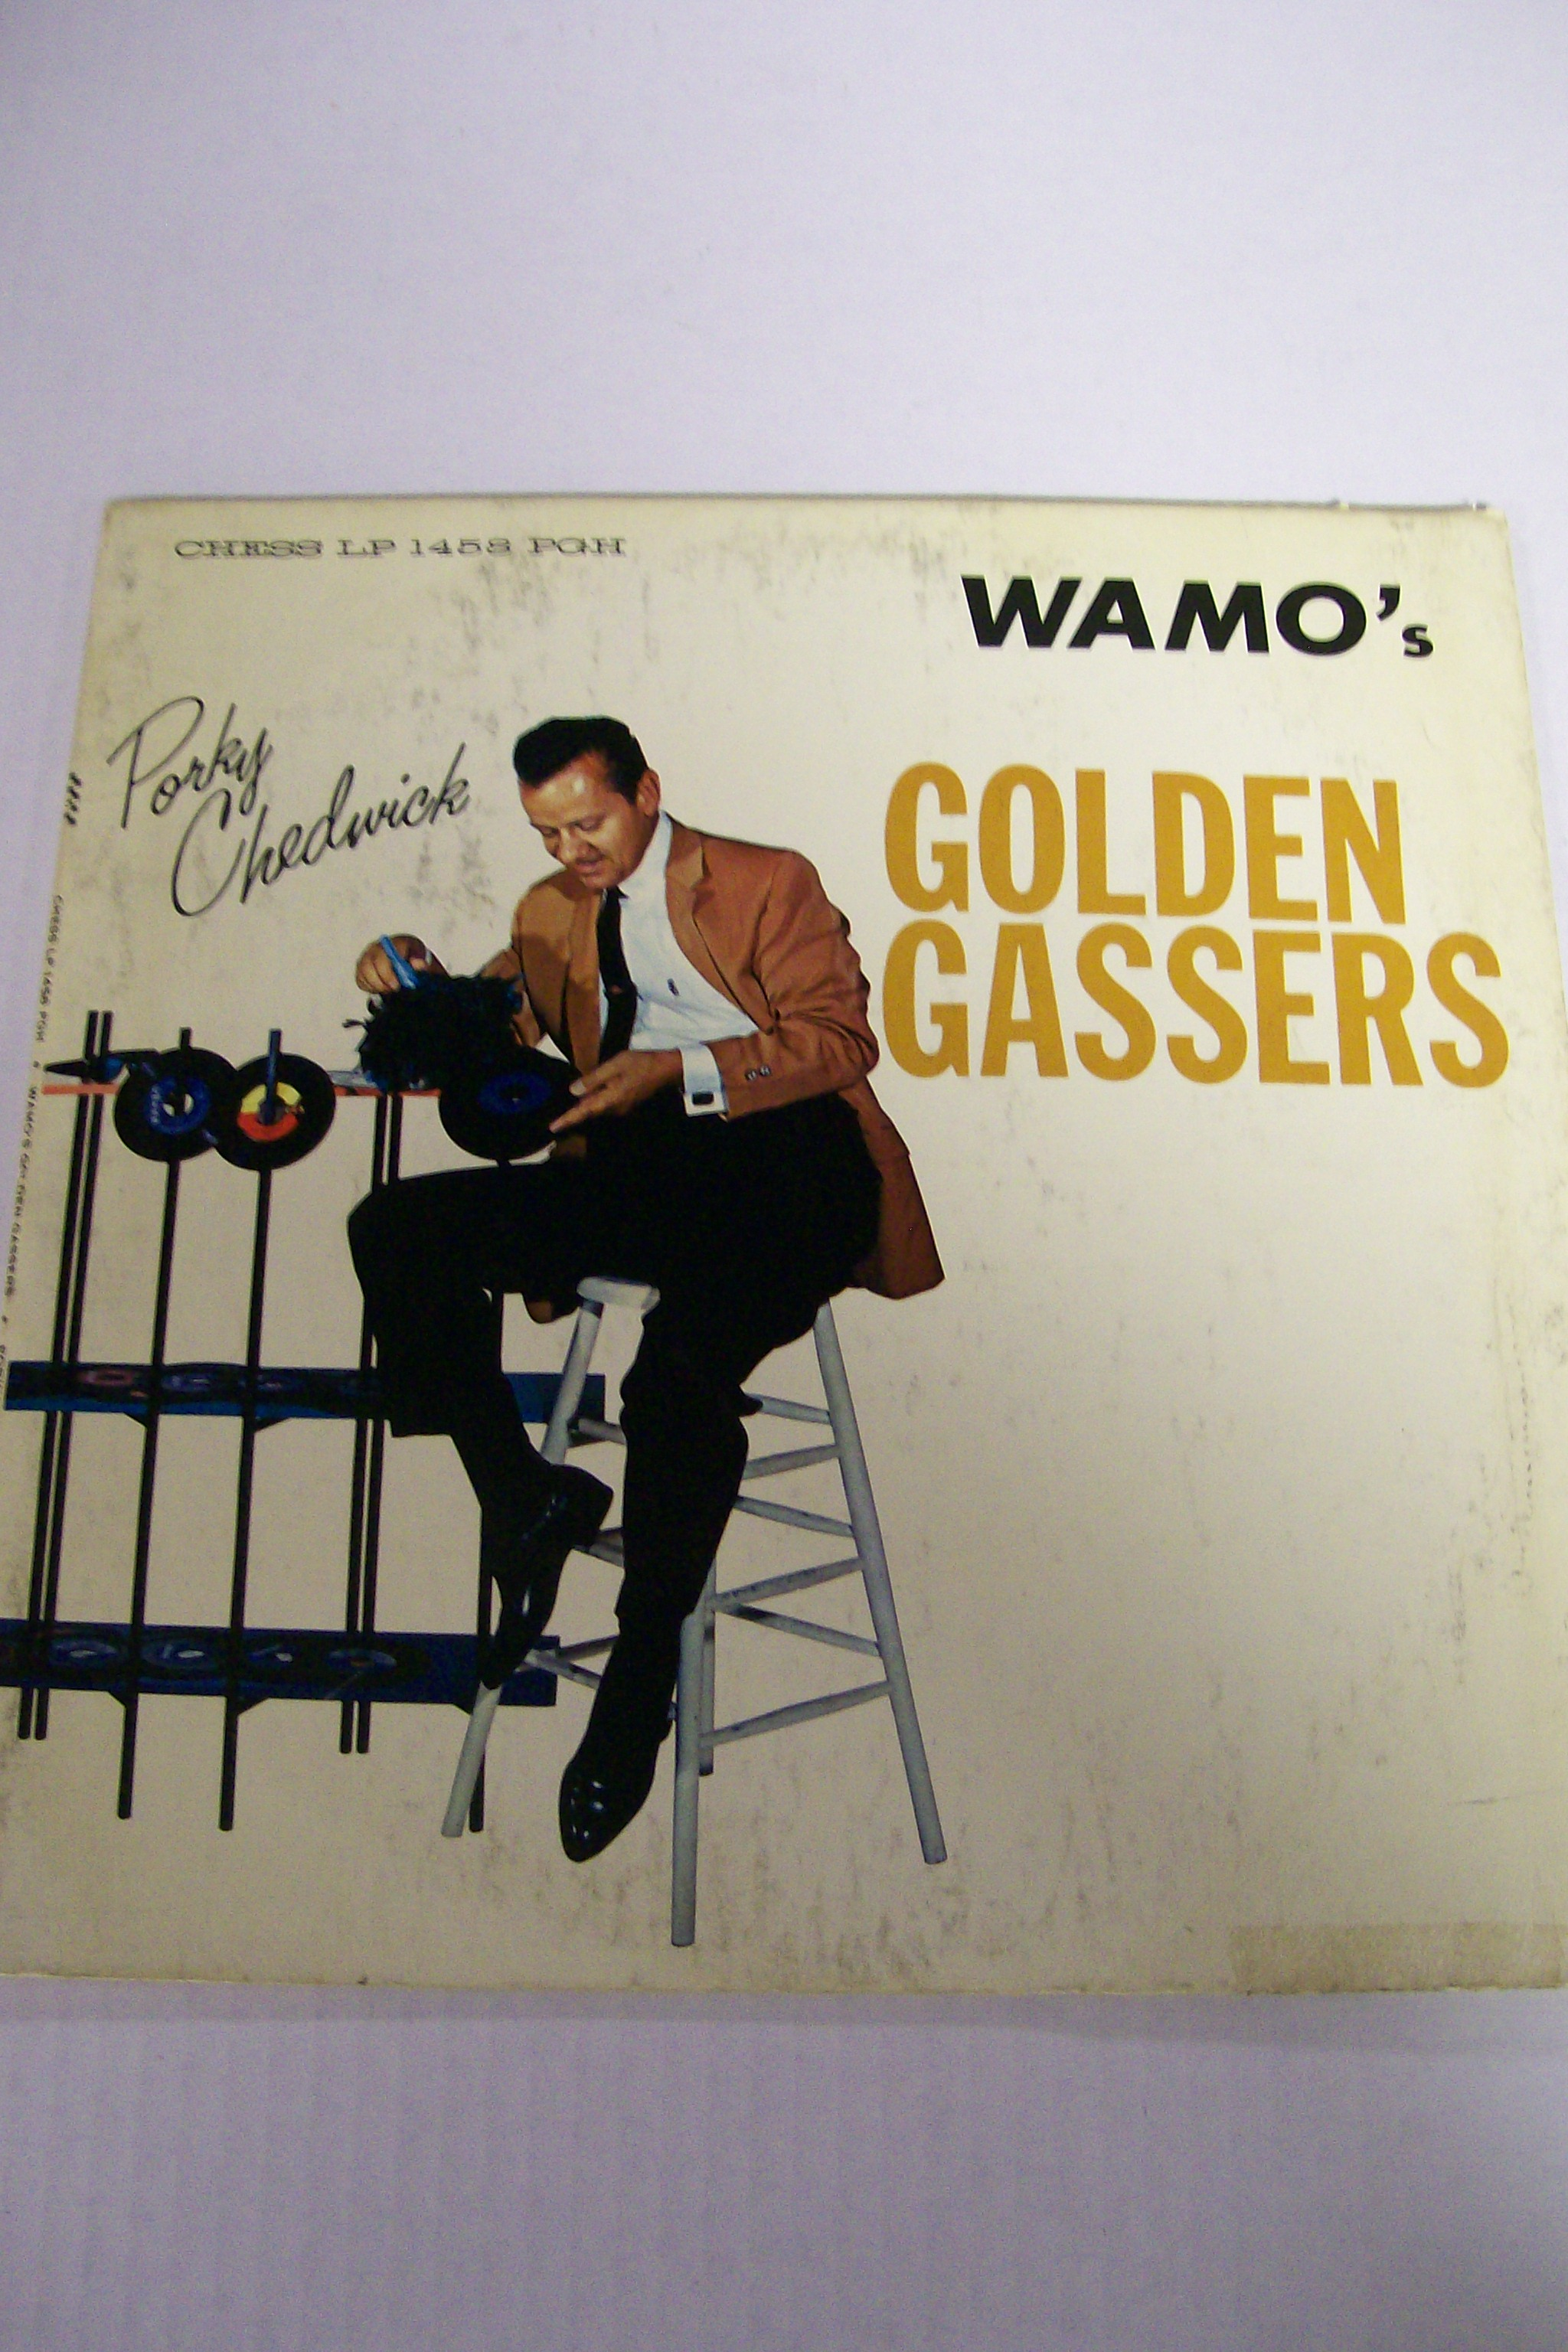 Porky Chedwick Wamo's Golden Gassers Chess LP 1458 PGH.